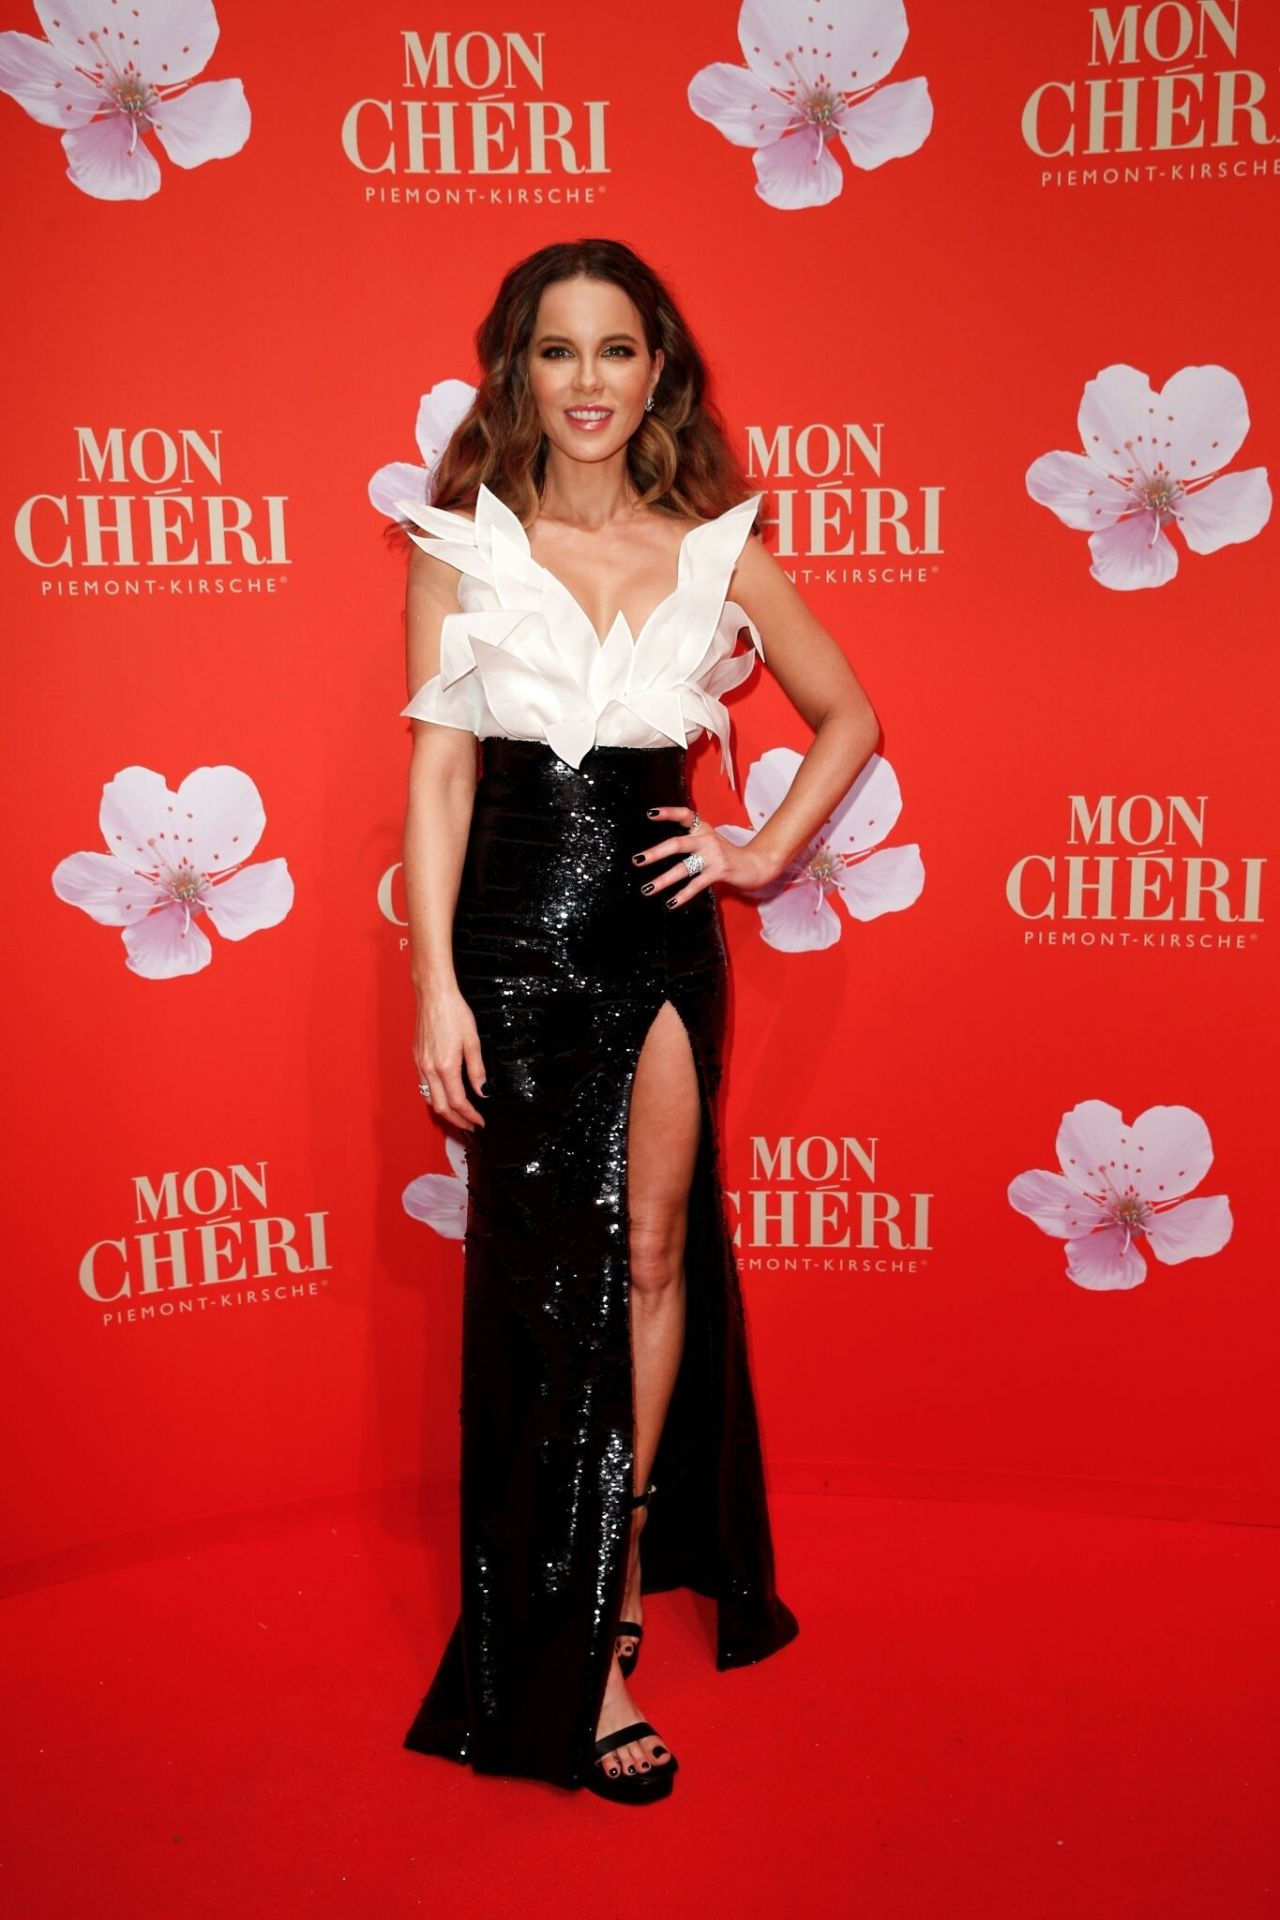 kate-beckinsale-yanina-couture-mon-cheri-barbara-tag-ball-in-munich